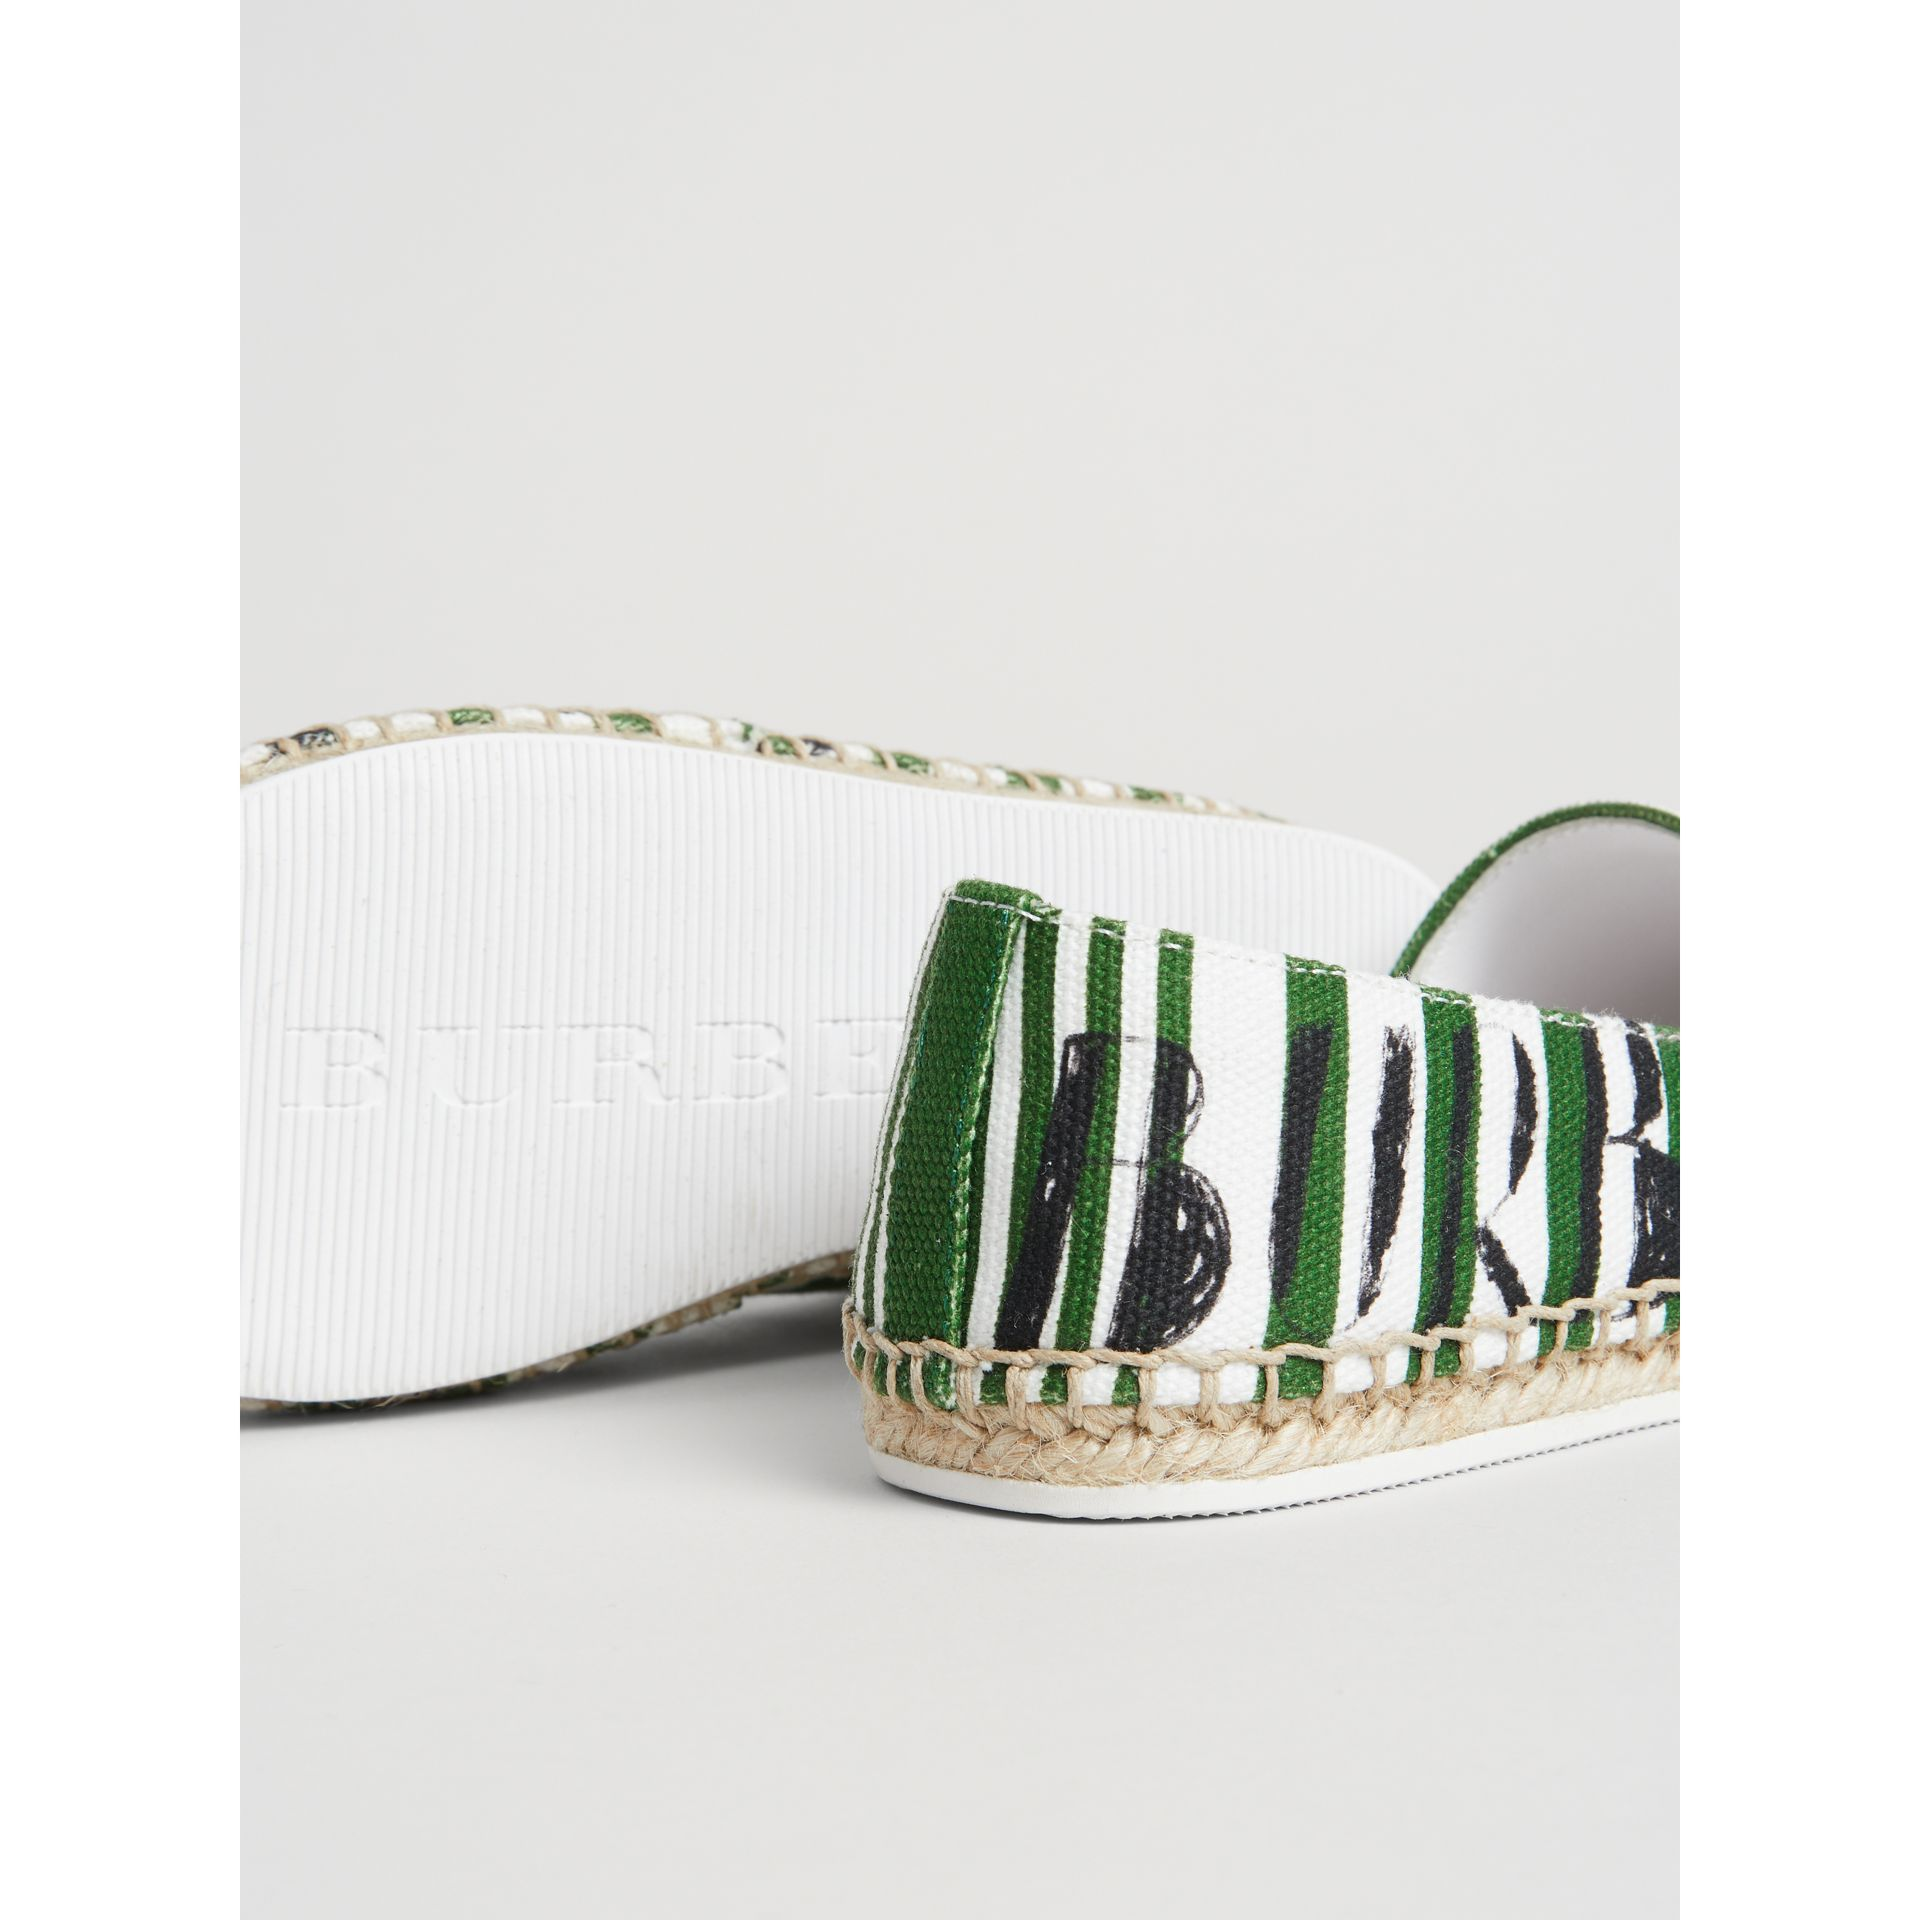 SW1 Print Striped Cotton Espadrilles in Bright Fern Green | Burberry - gallery image 1